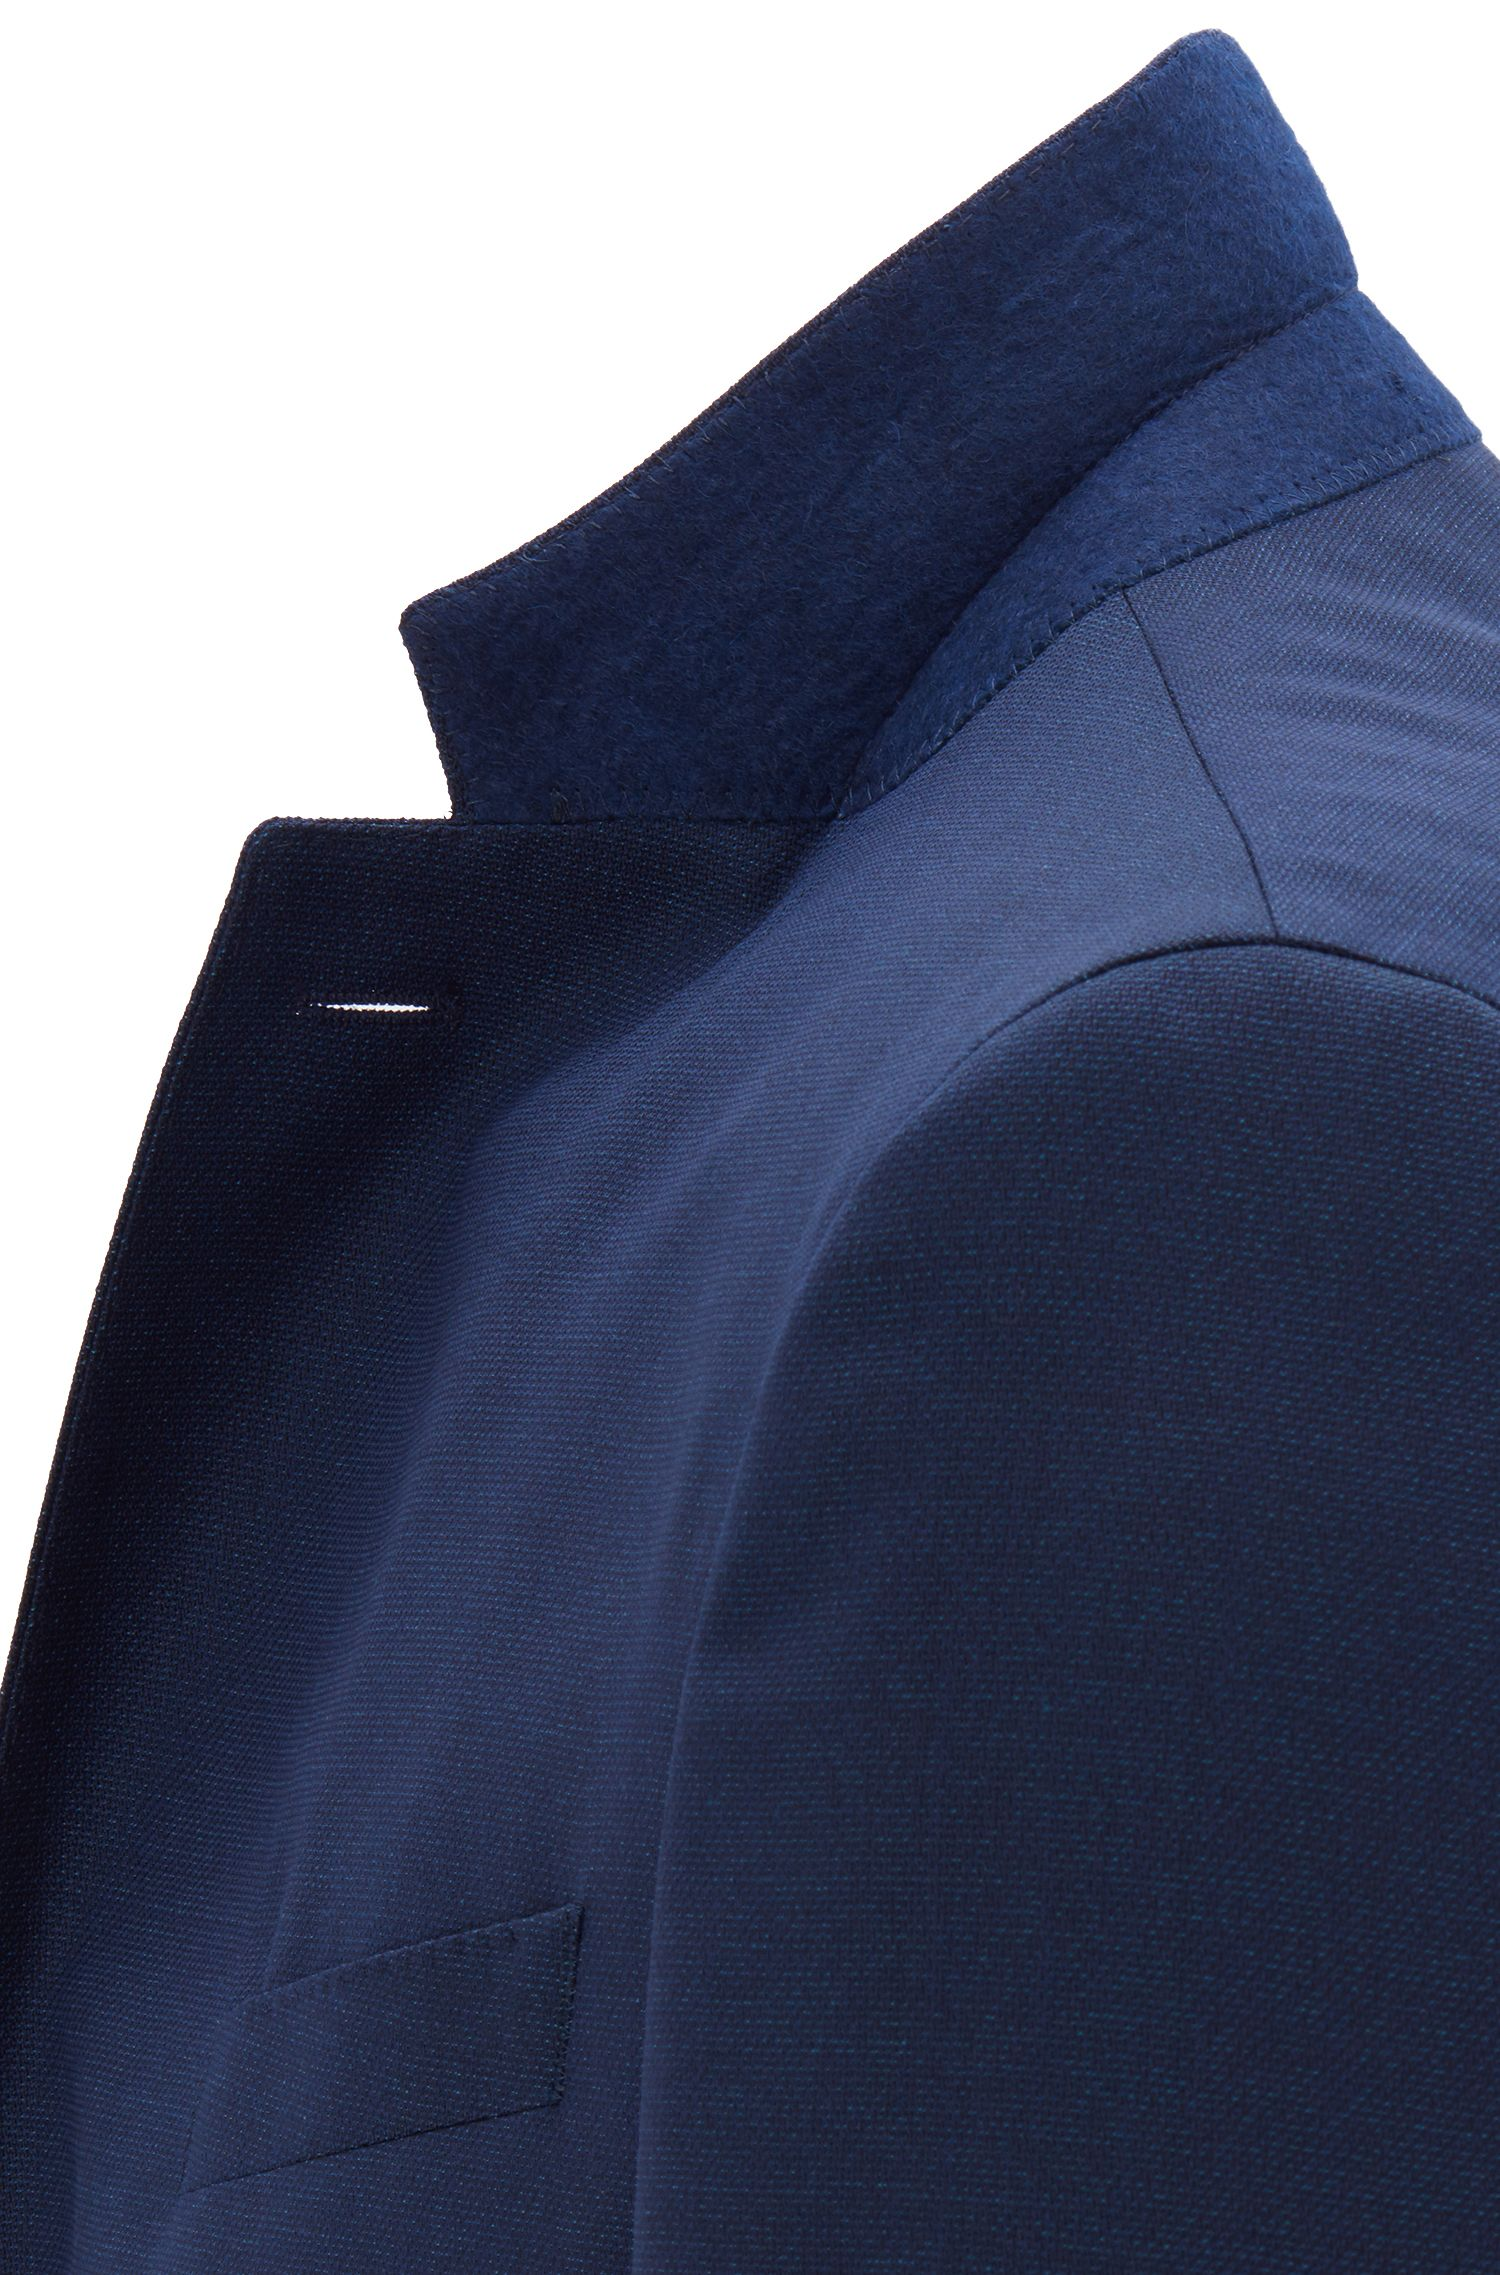 Slim-fit jacket in micro-patterned wool with natural stretch, Open Blue